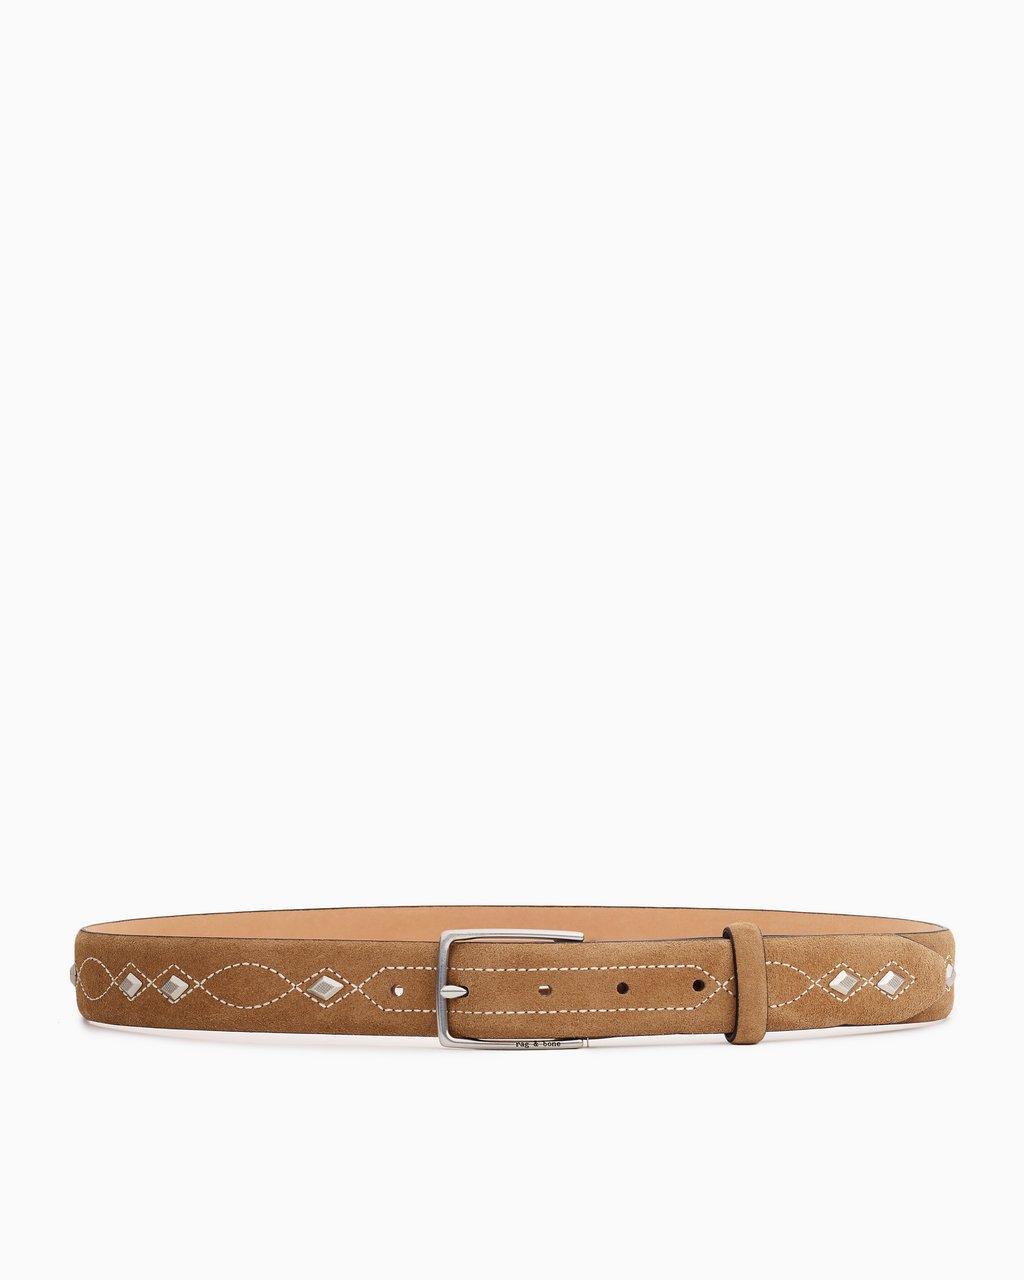 Rag & Bone South Dress Belt - Camel